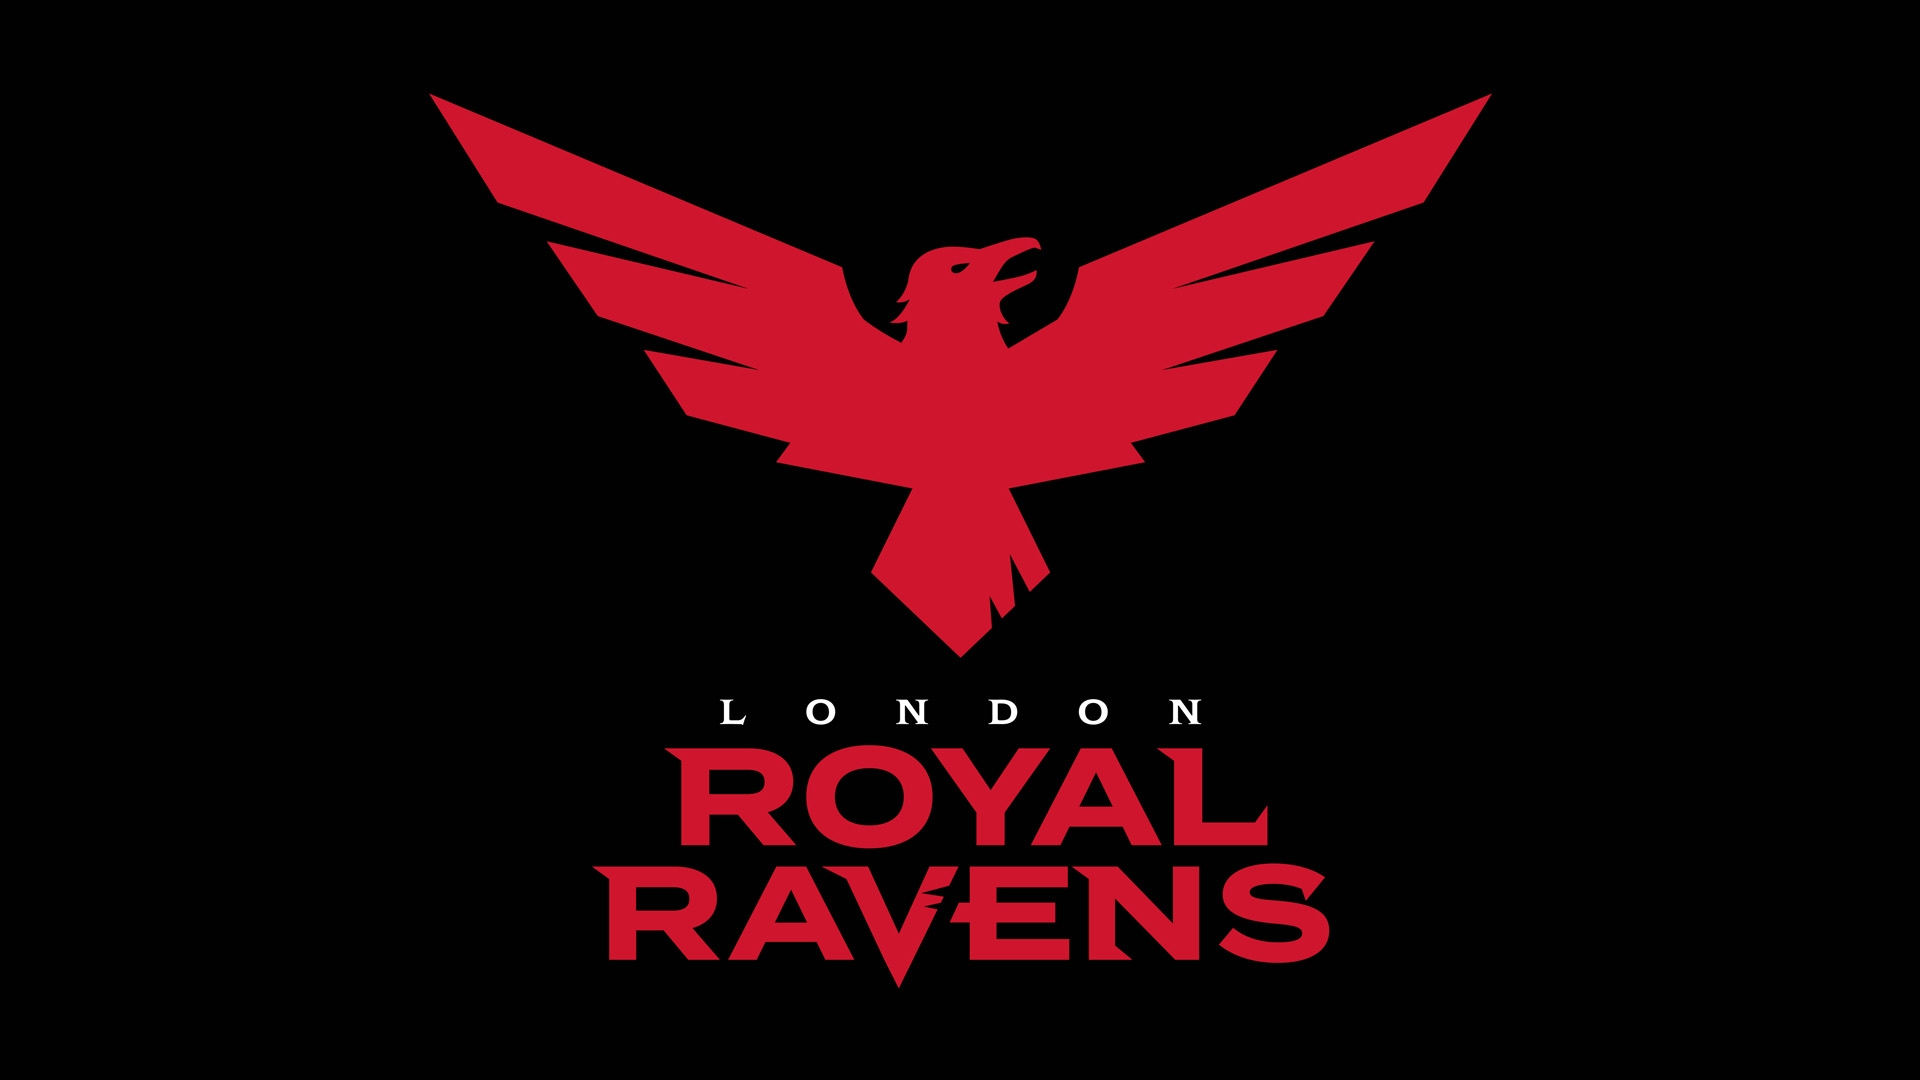 london_royal_ravens_red